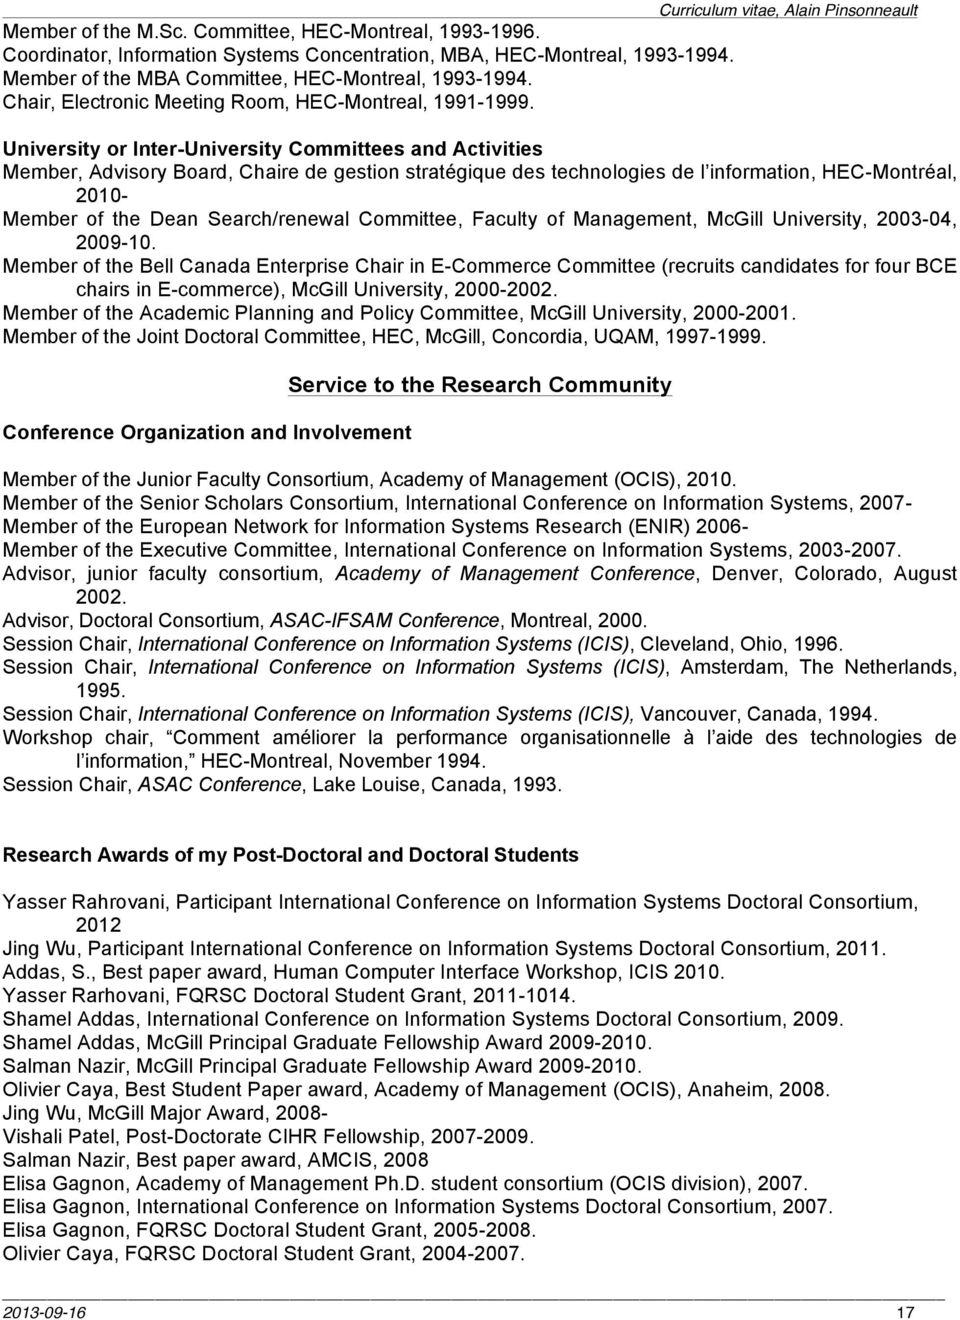 University or Inter-University Committees and Activities Member, Advisory Board, Chaire de gestion stratégique des technologies de l information, HEC-Montréal, 2010- Member of the Dean Search/renewal